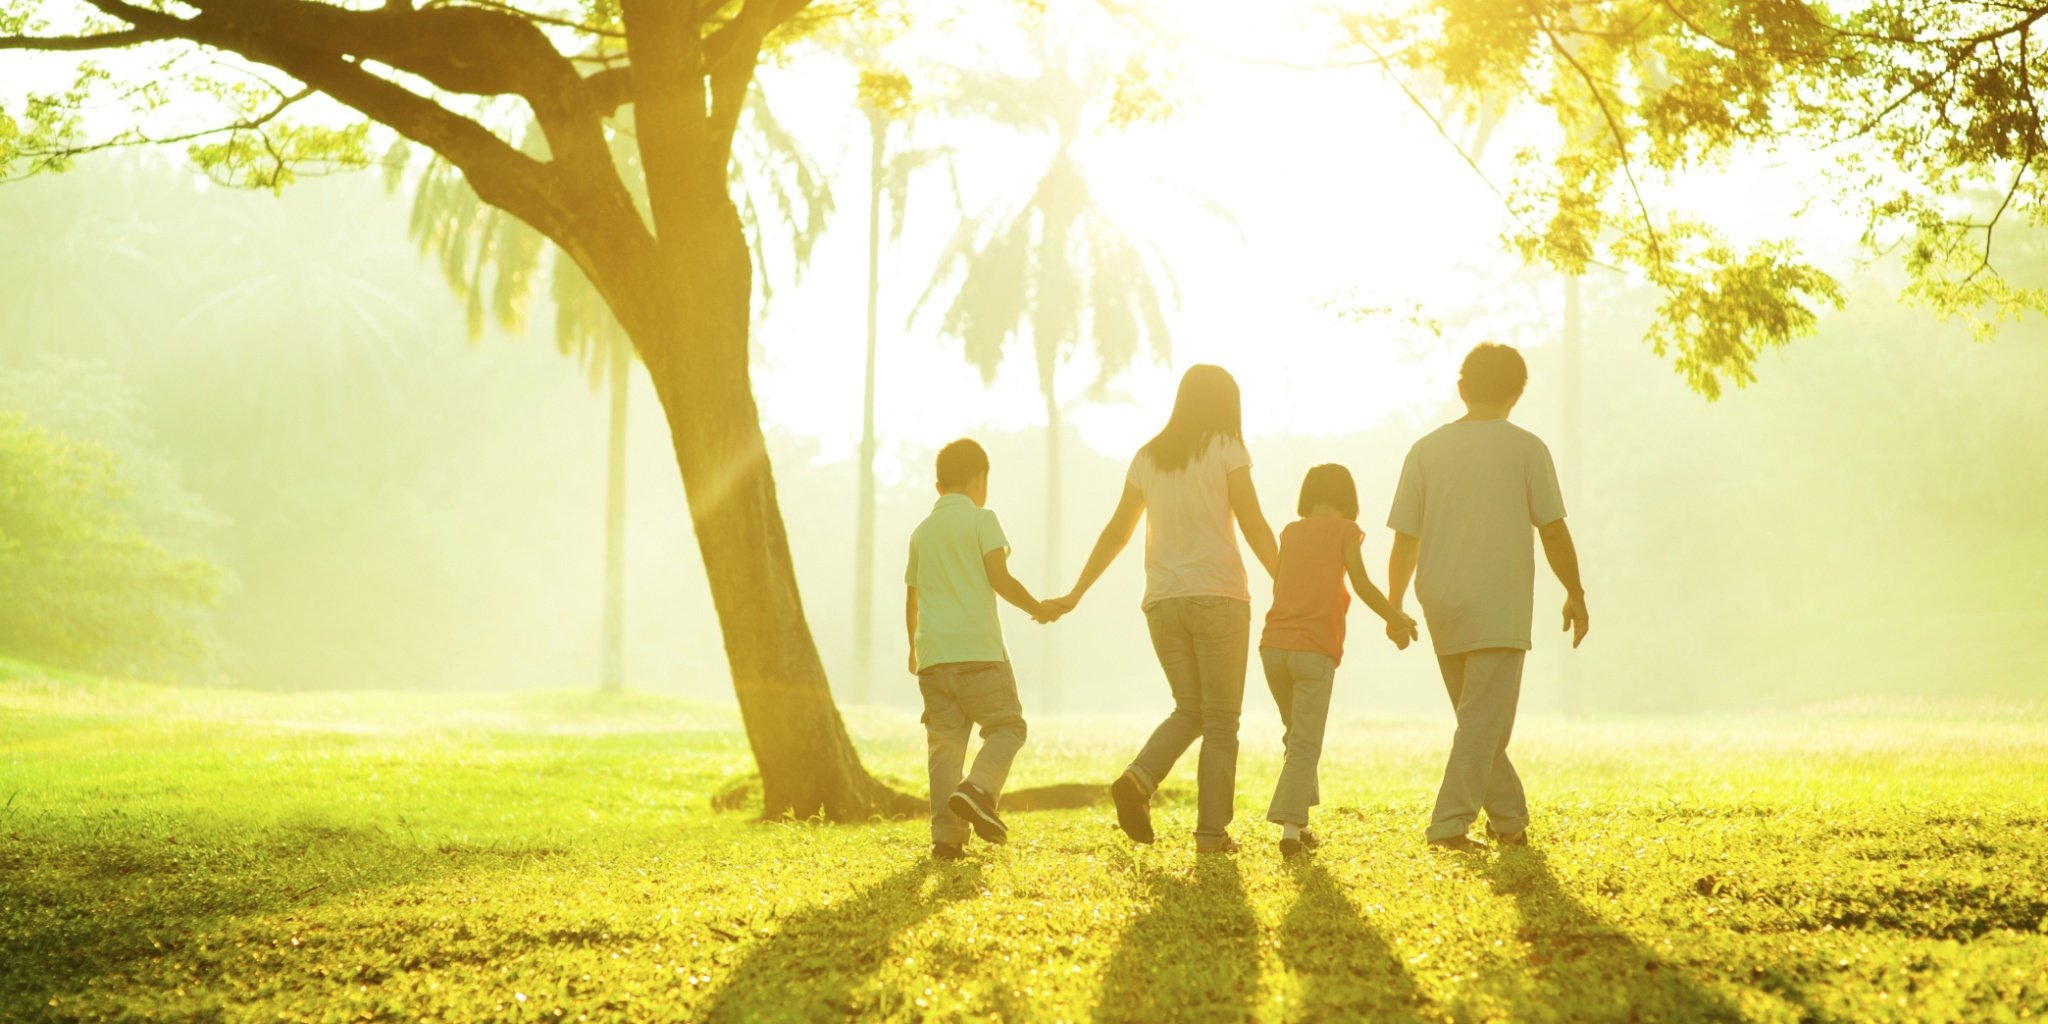 Family taking a walk through a sunny park